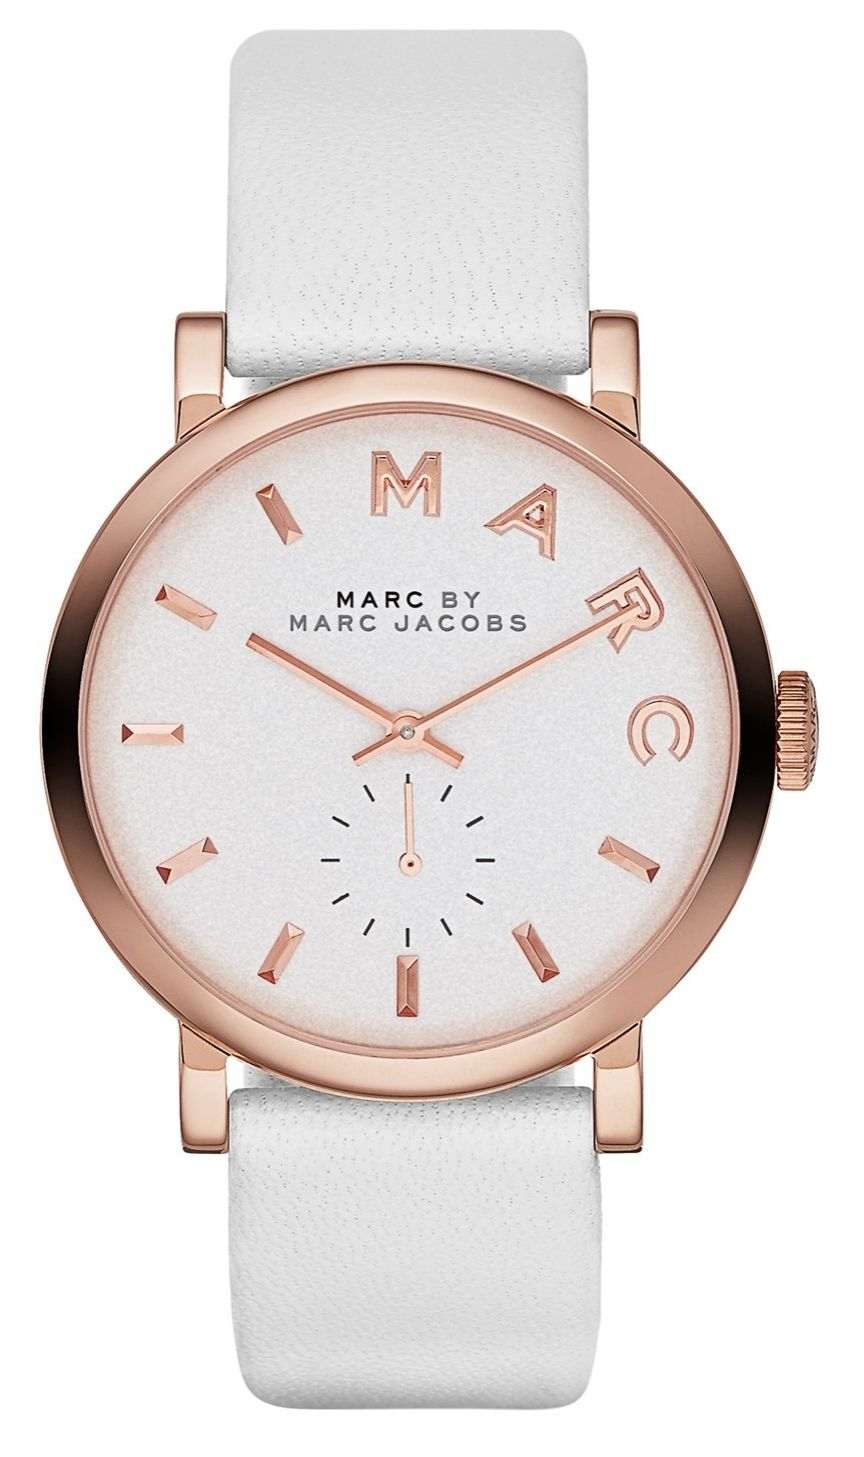 Finishing off the arm candy with this polished white and rose gold Marc Jacobs watch.